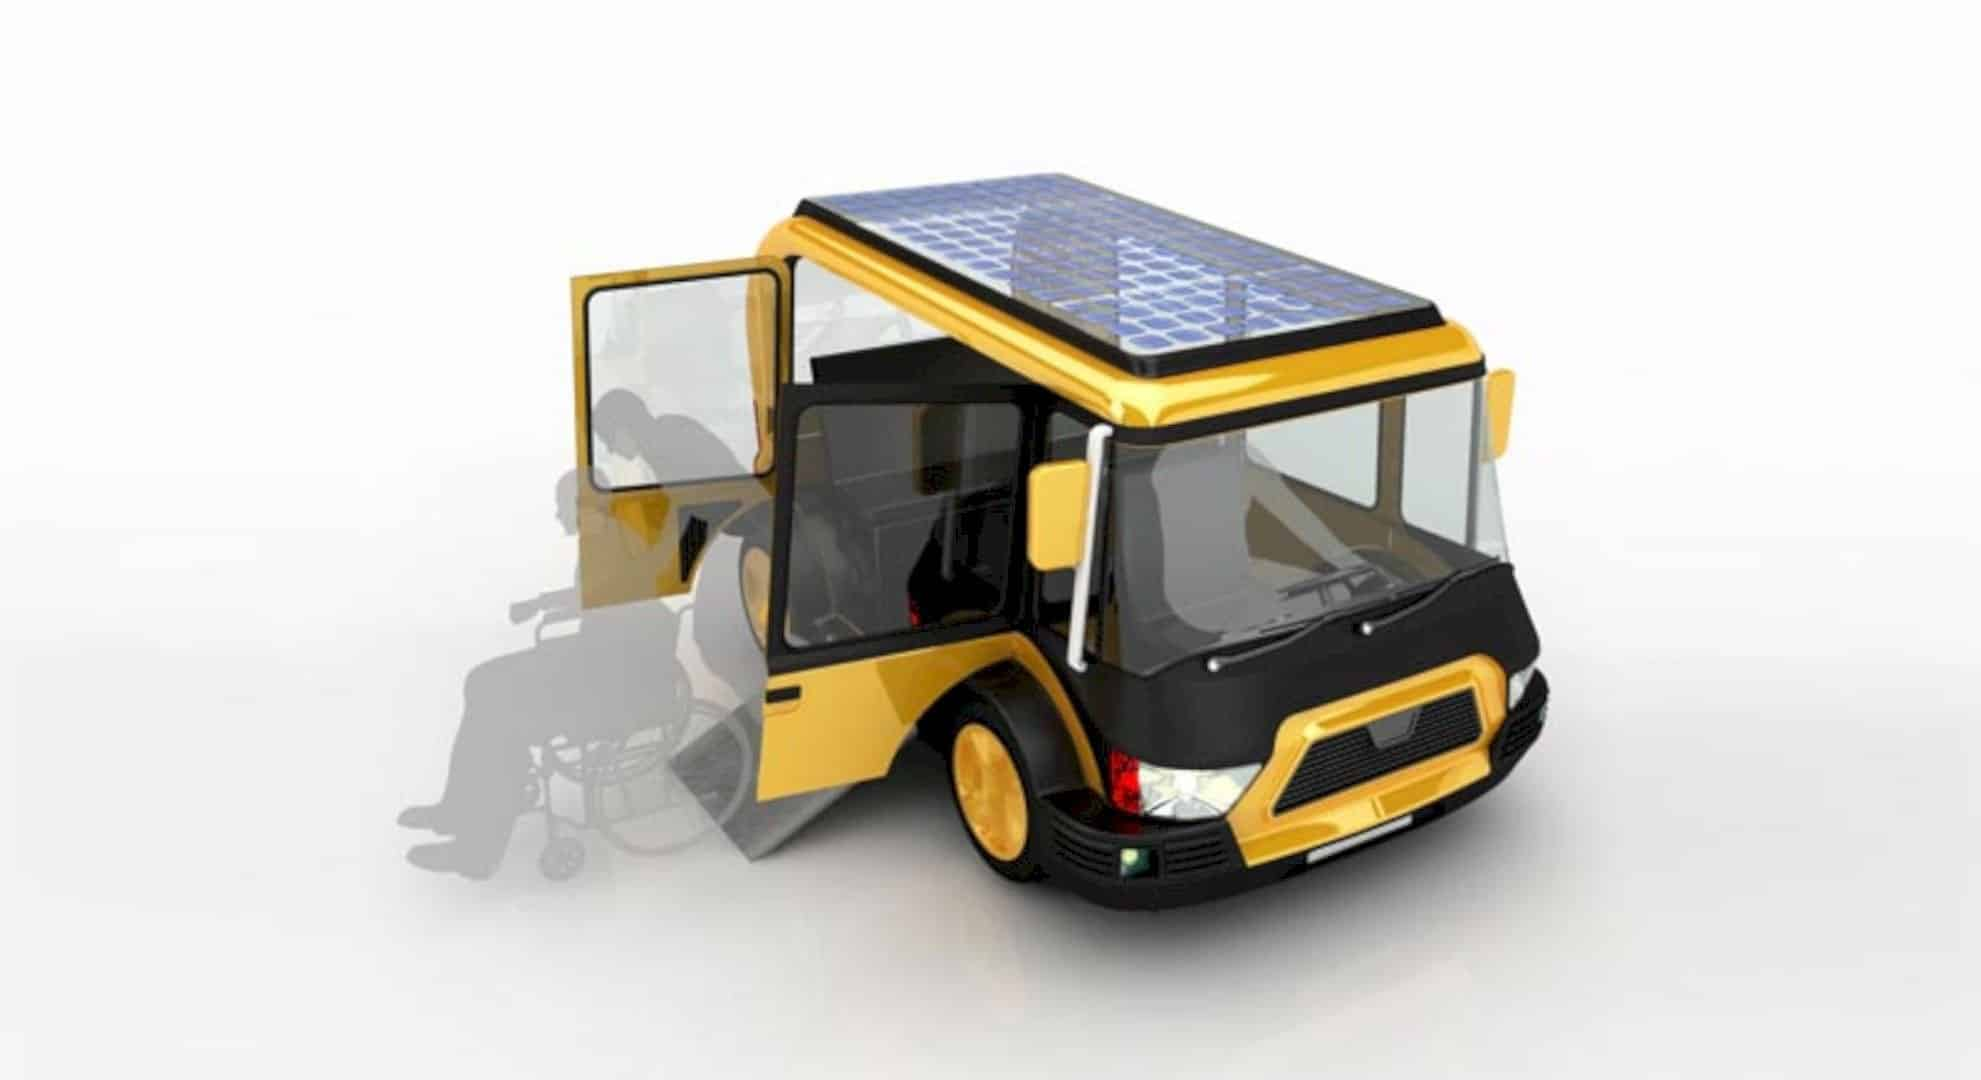 Solar Taxi: An Electric Vehicle with Clean Energy for High-Performance Service